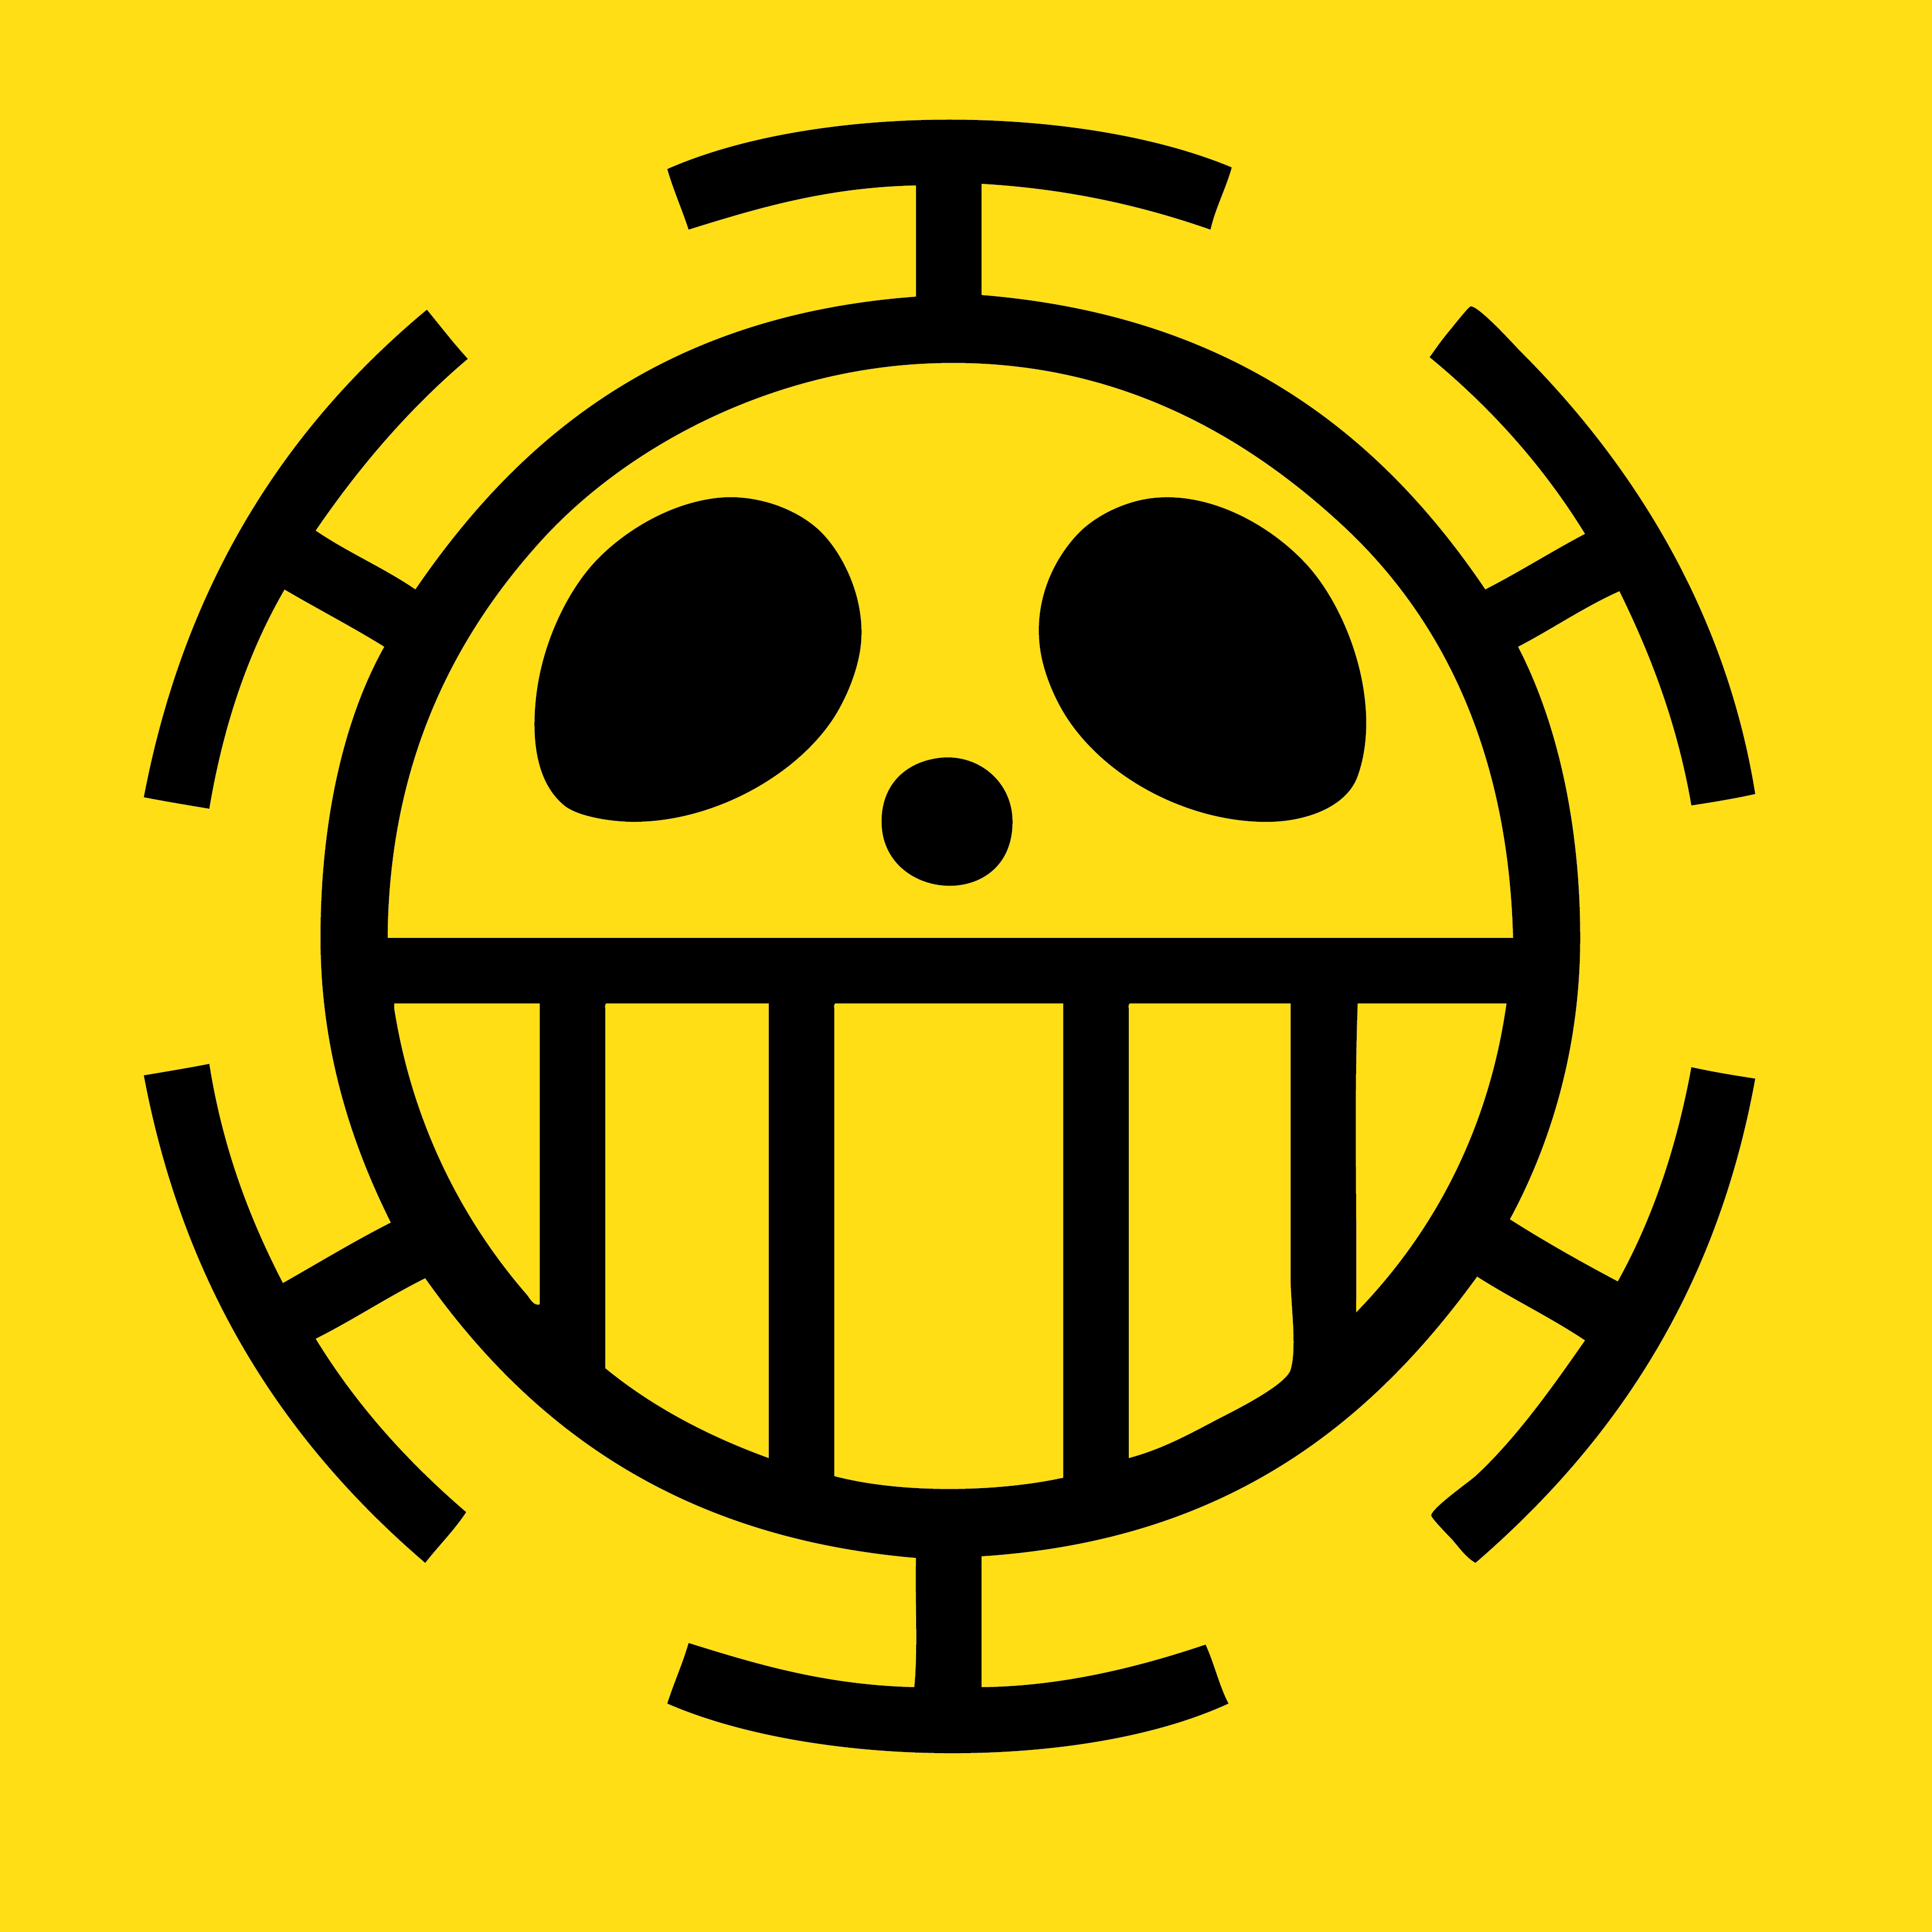 One Piece Trafalgar Law Flag Emblem by elsid37 on DeviantArt